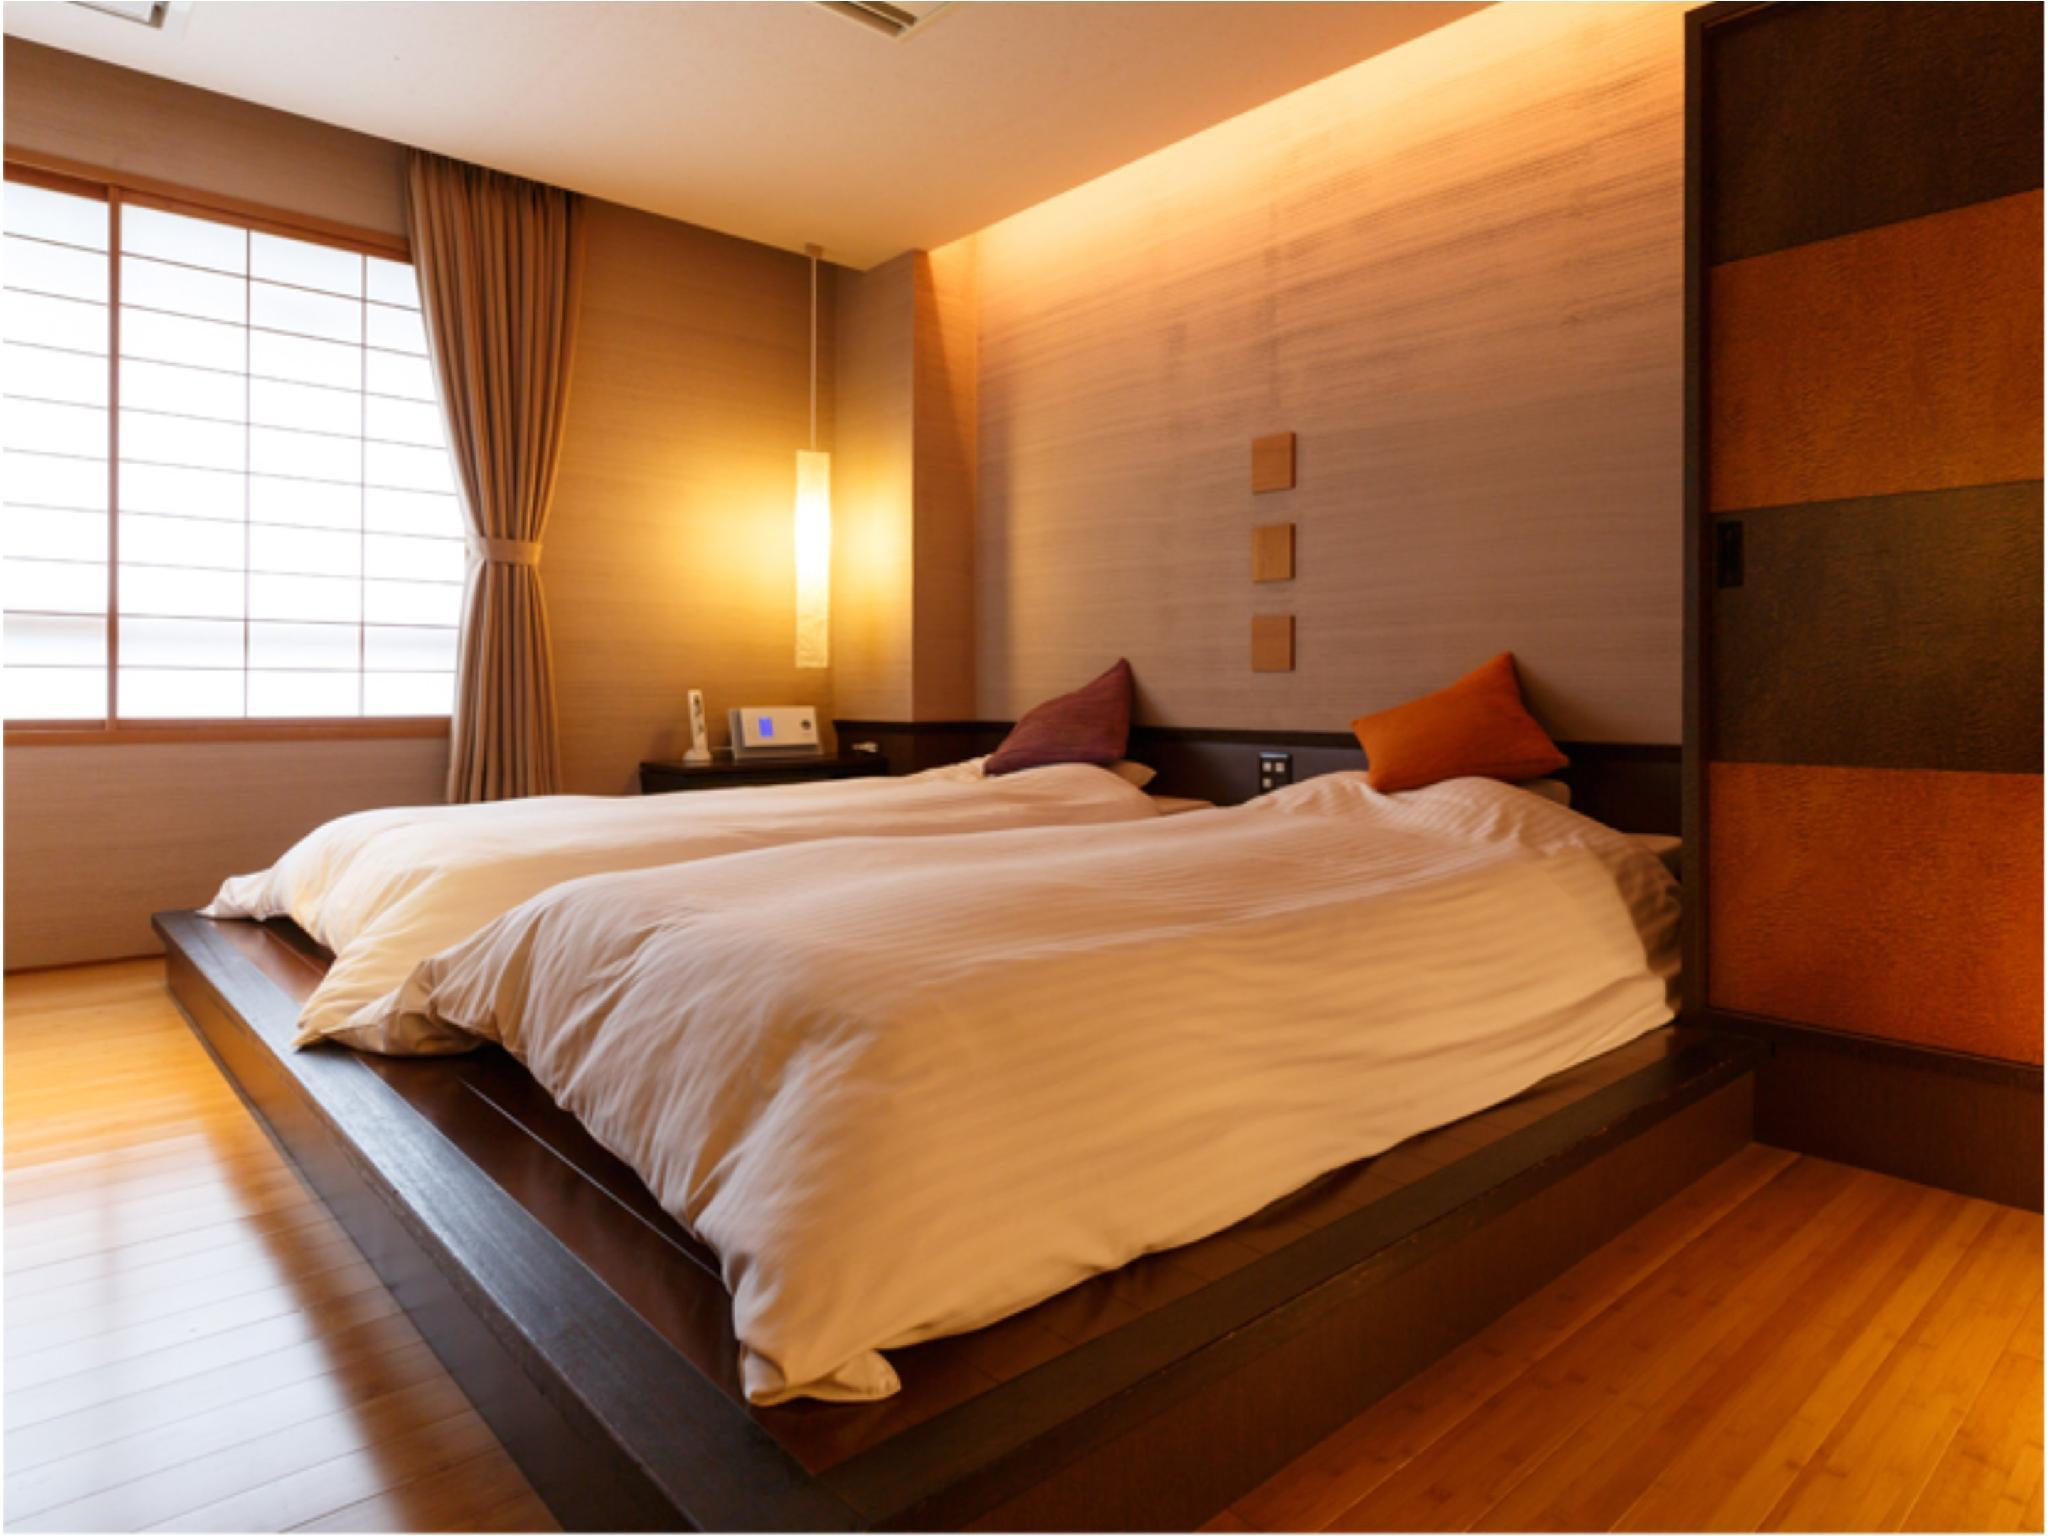 【風の棟 Aタイプ】デラックス 和洋室 (Deluxe Japanese/Western-style Room with Massage Chair (2 Japanese Beds, Kaze-no-To Wing))